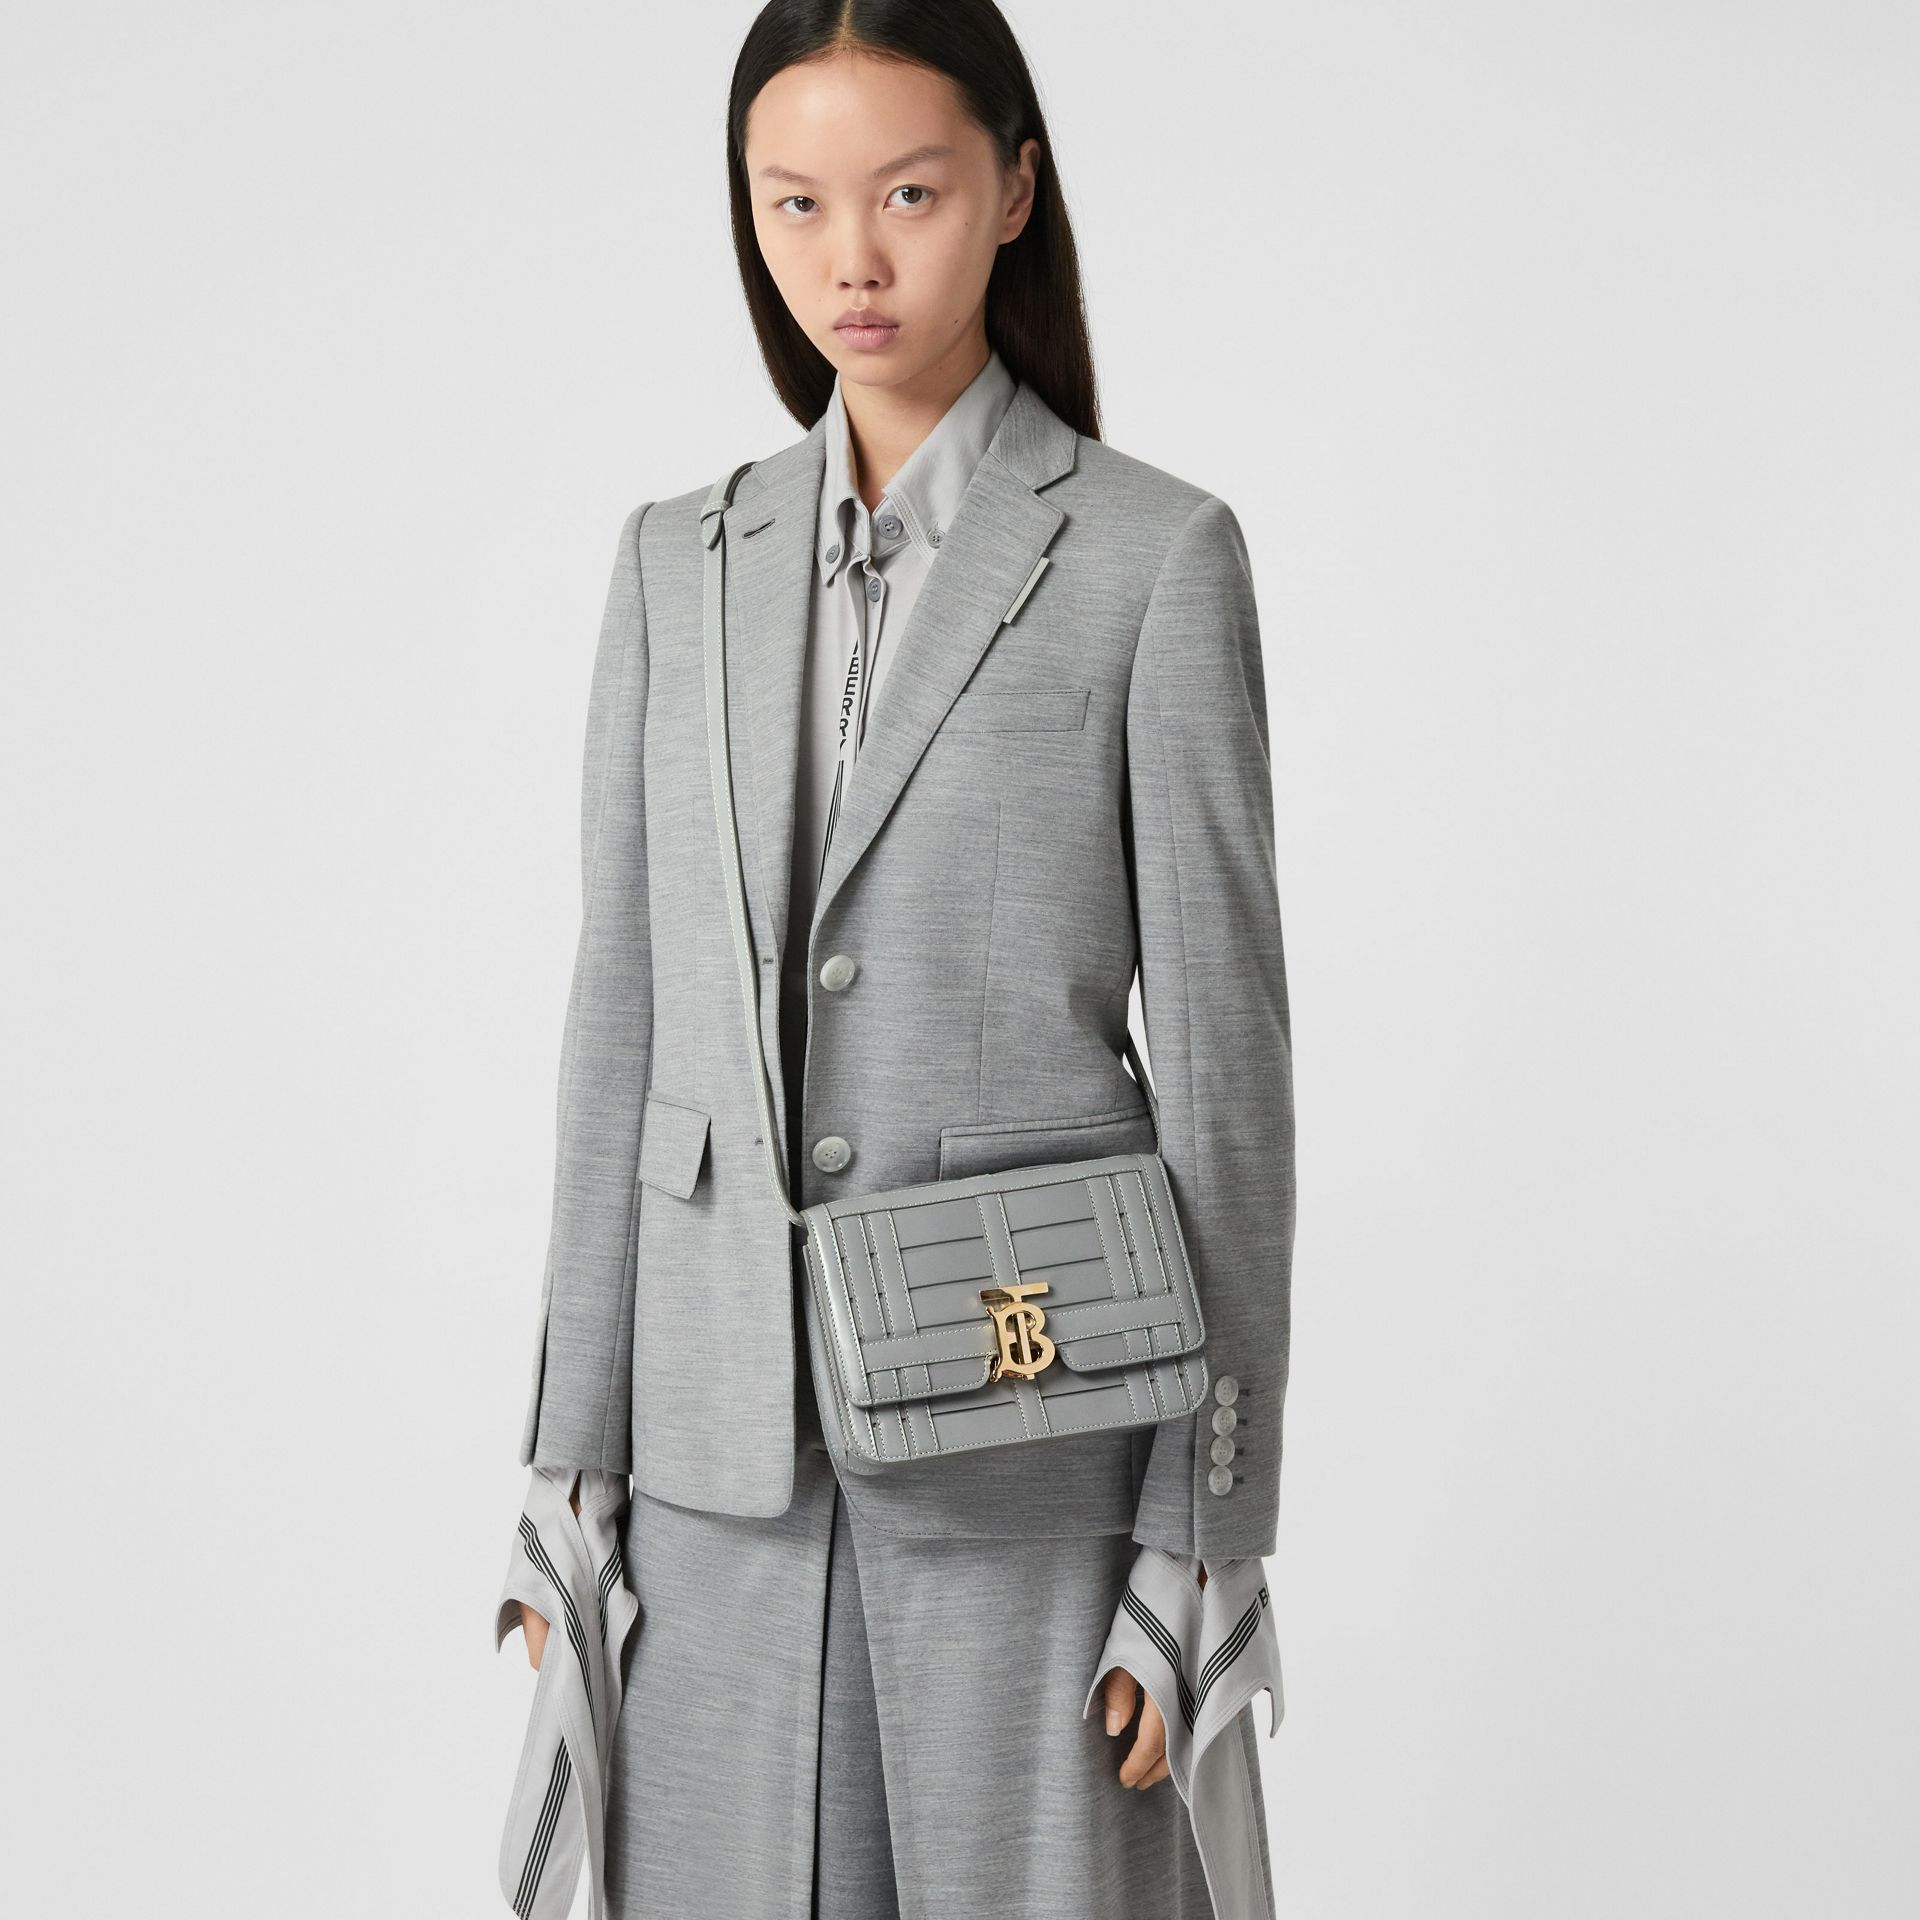 Small Woven Leather TB Bag in Cloud Grey - Women | Burberry United Kingdom - gallery image 2